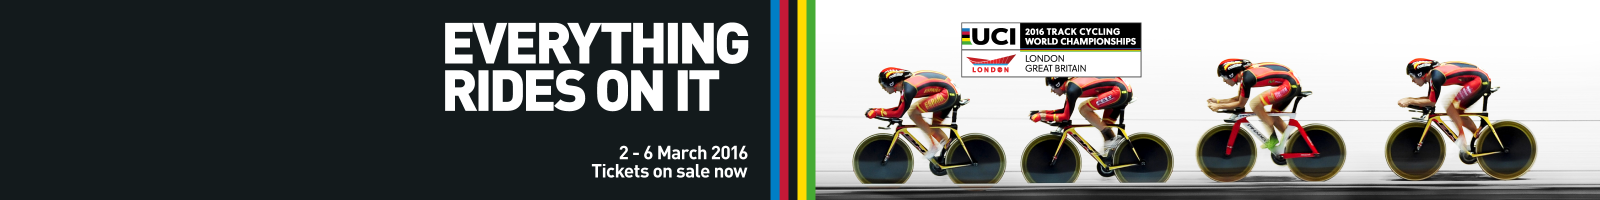 Buy tickets for UCI Track Cycling World Championships 2016 London